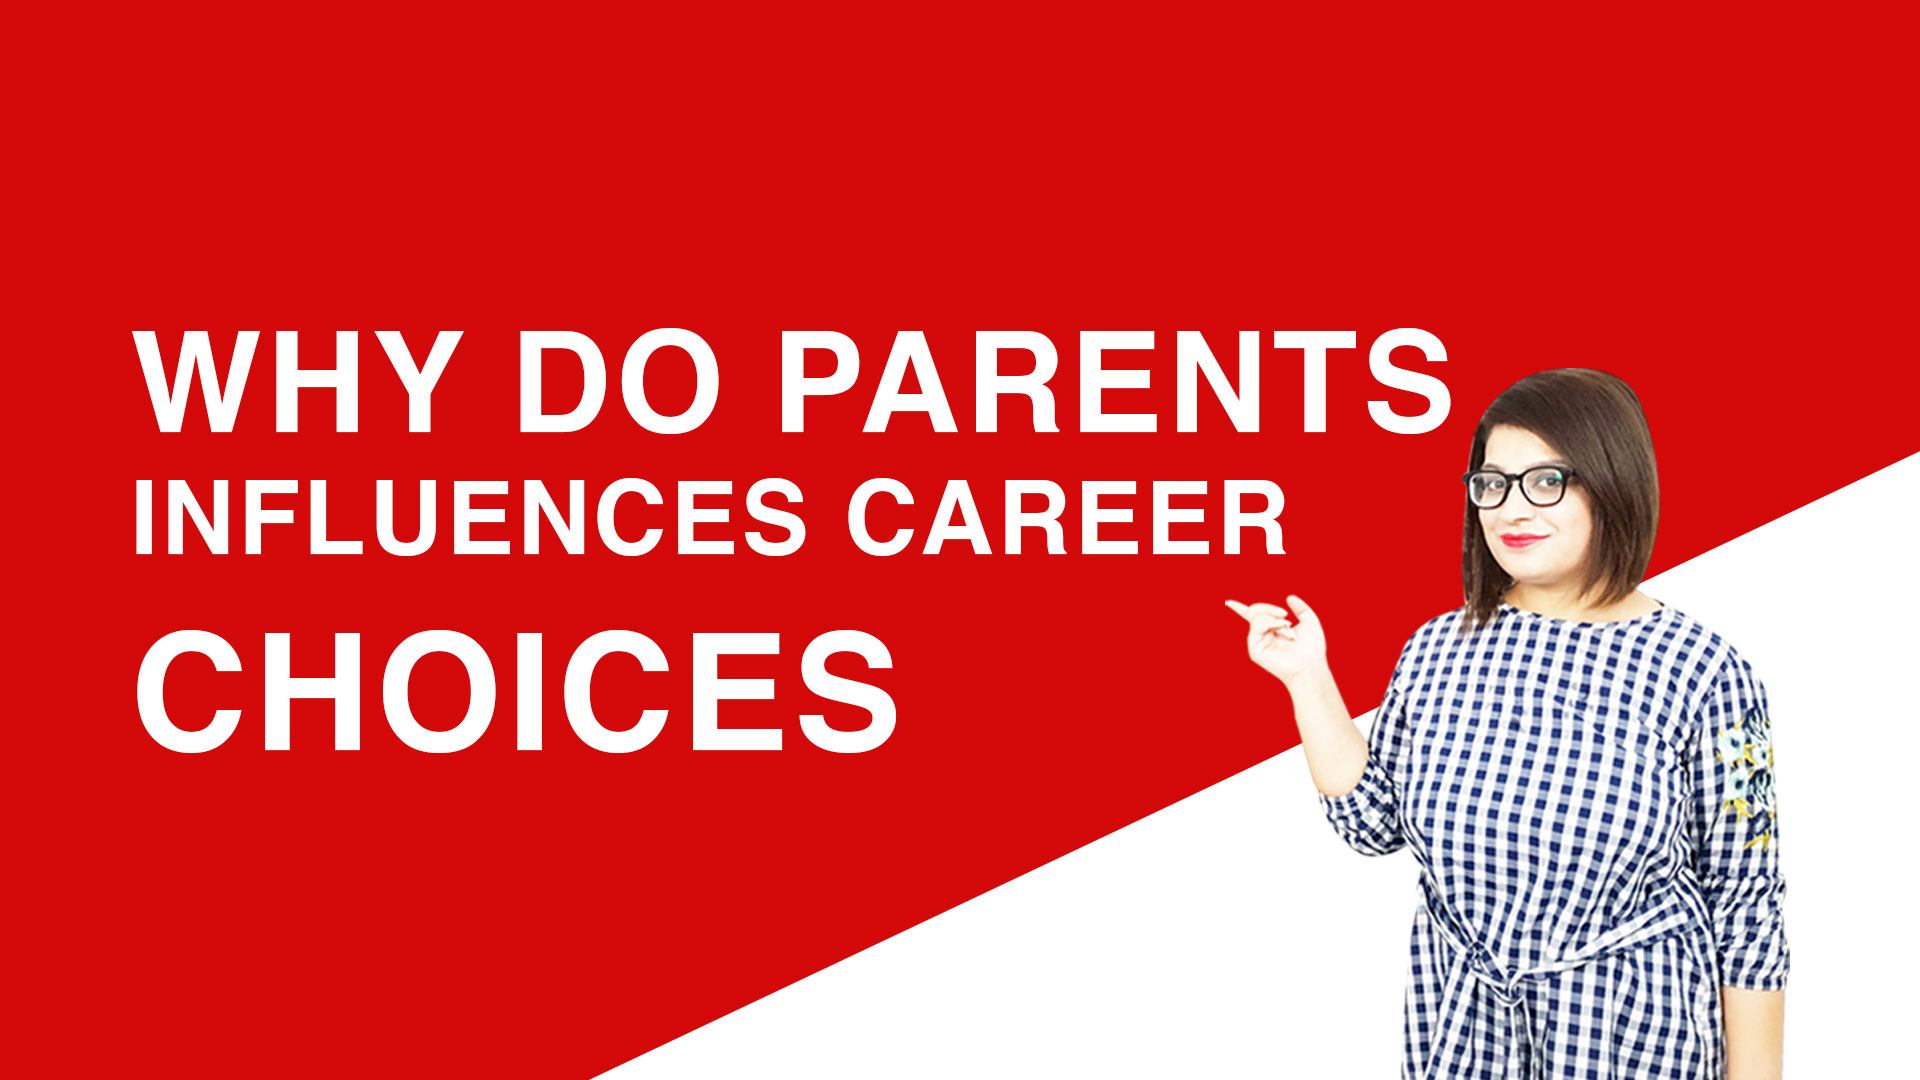 Why-Do-Parents-Influences-Career-Choices-Why-Do-Parents-Influences-Career-Choices